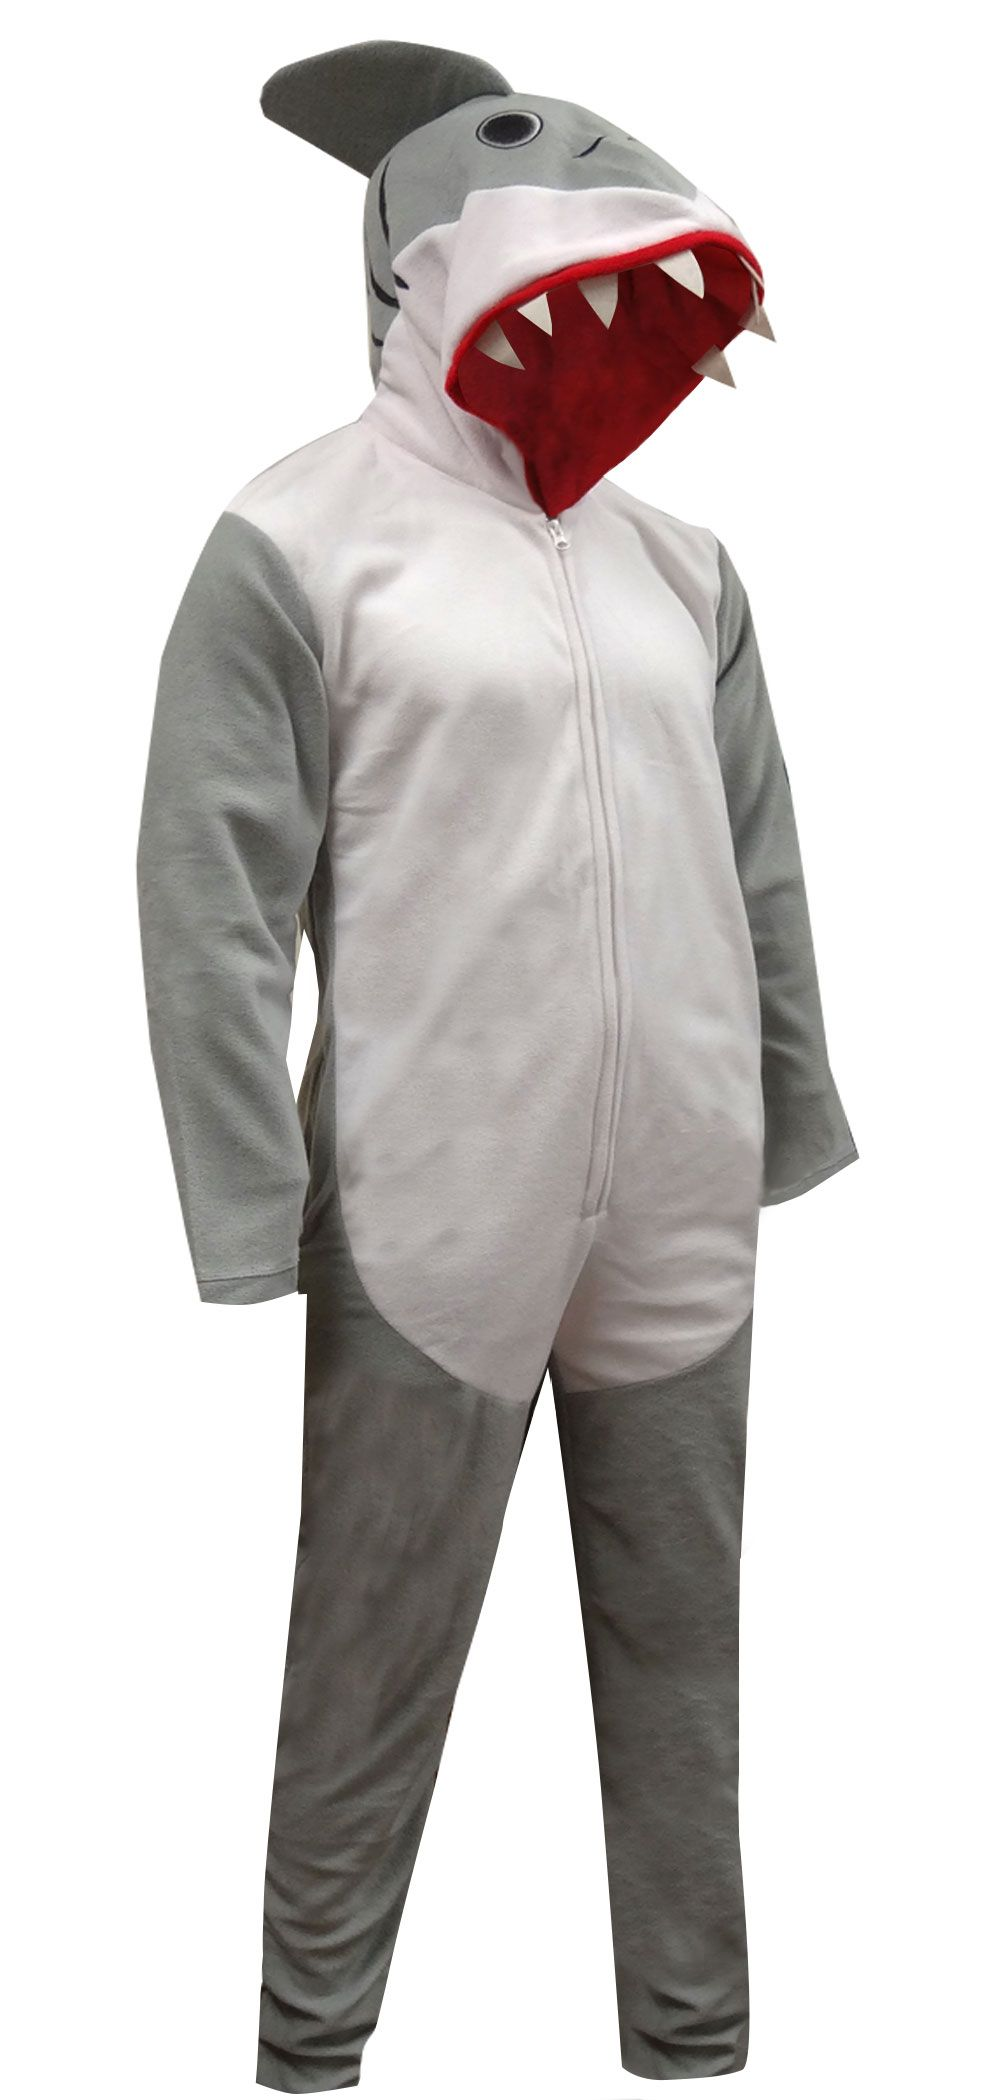 This is the coolest union suit we have had in a long time! These one piece  pajamas for men are designed to look just like a shark and were made in ... af656a9a0